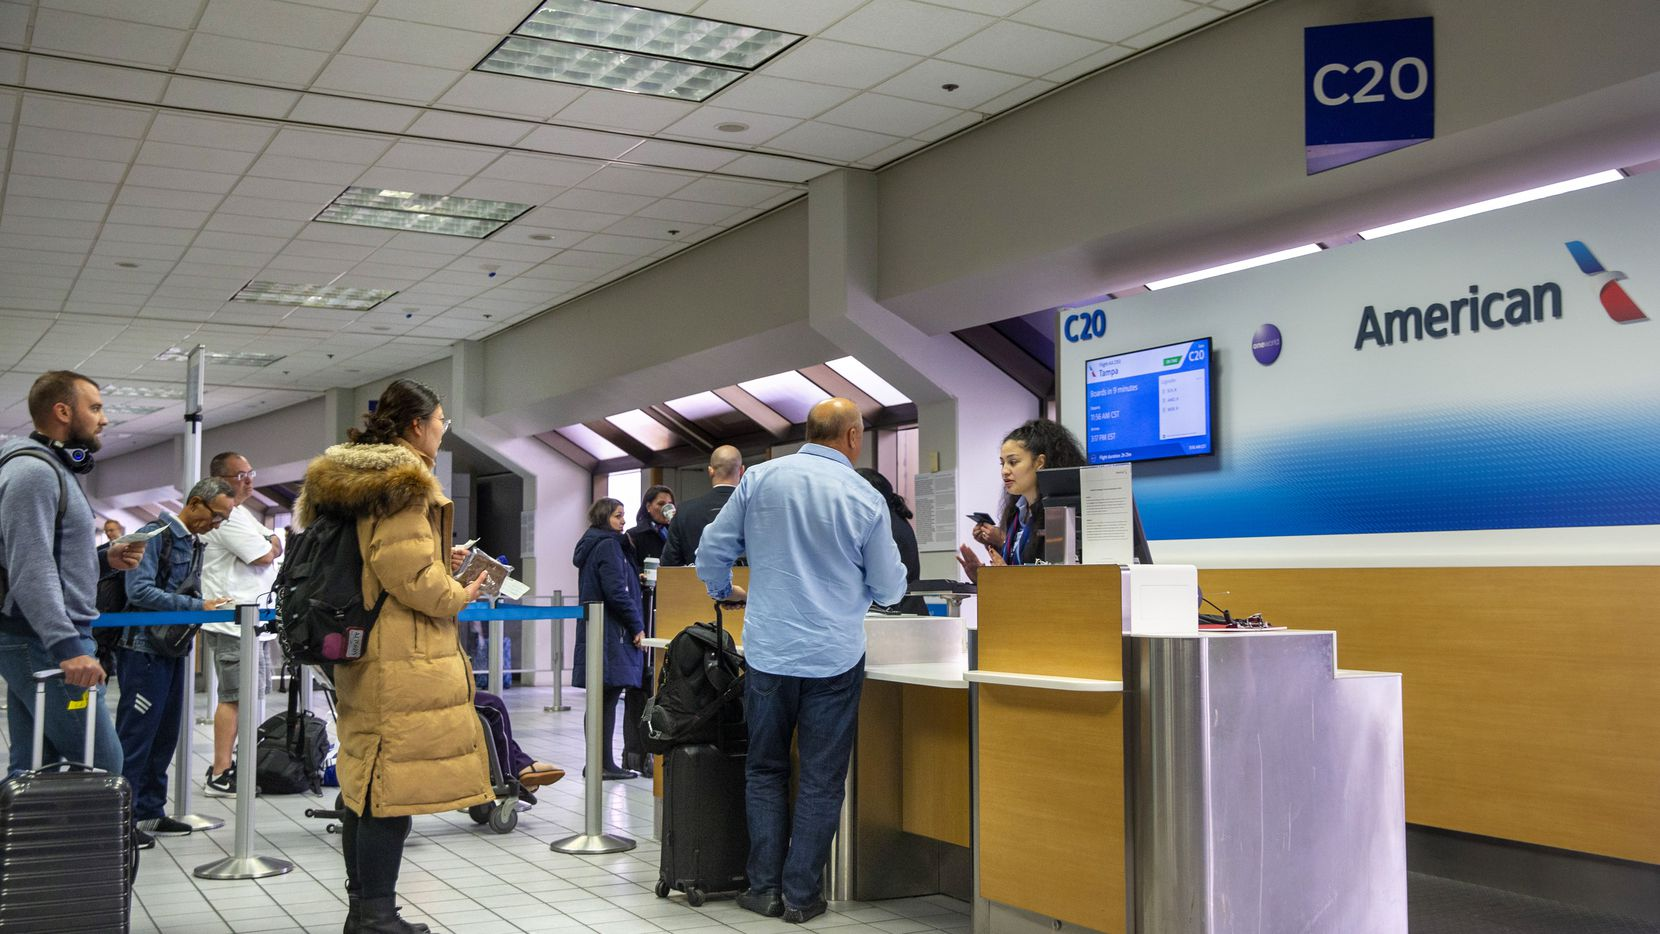 Passengers wait at an American Airlines ticket counter at DFW International Airport in Irving on Nov. 22, 2019. American Airlines is bumping passengers from overbooked flights at an industry-leading rate.